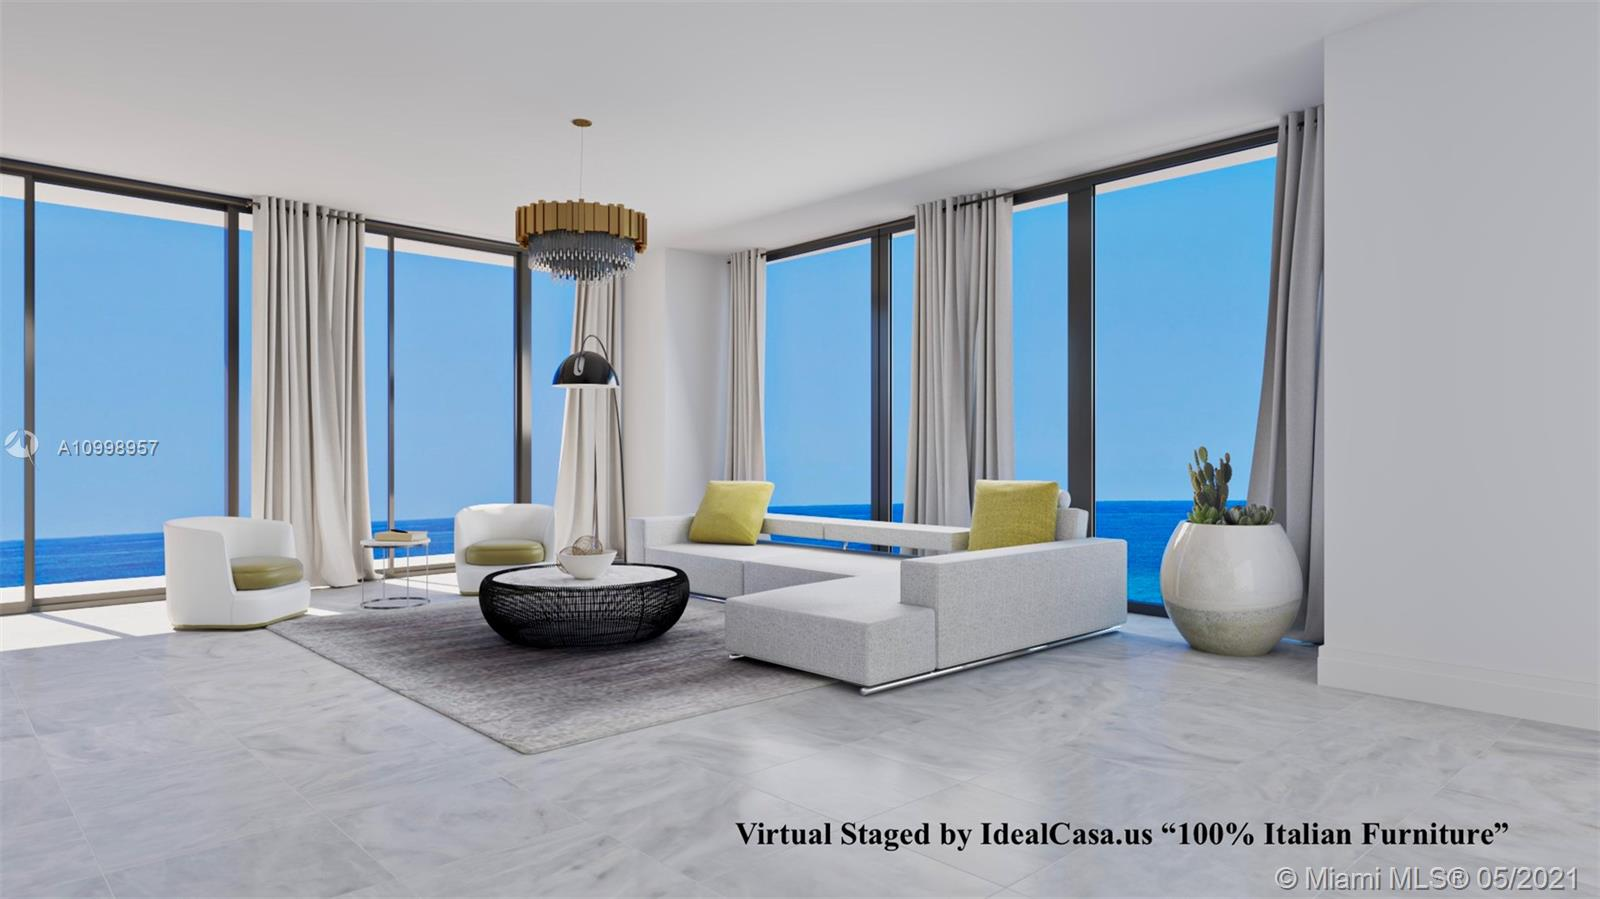 """Turnberry Ocean Club Luxury Residences at Sunny Isles Beach. New construction 2021. Unit 1804 South. Direct Ocean views and Bay views. 4 Beds & 5 1/2 Baths, 3,625 SqFt plus terraces. Private elevator with foyer. This unit has 10' Ceilings, very illuminated. Italian Kitchen """"Snaidero"""", white stone countertops, top-of-the line appliances """"Gaggenau"""". This unit is also available for rent. Master bedroom with 2 walk-in closets. Large master Bathroom. Six floors amenities, beach service, three swimming pools, private dining, Hydrotherapy Spa, fitness center, entertainment. Bar and restaurant with full kitchen. Privileges Turnberry Isle Resort, including golf, tennis, and Marina activities."""